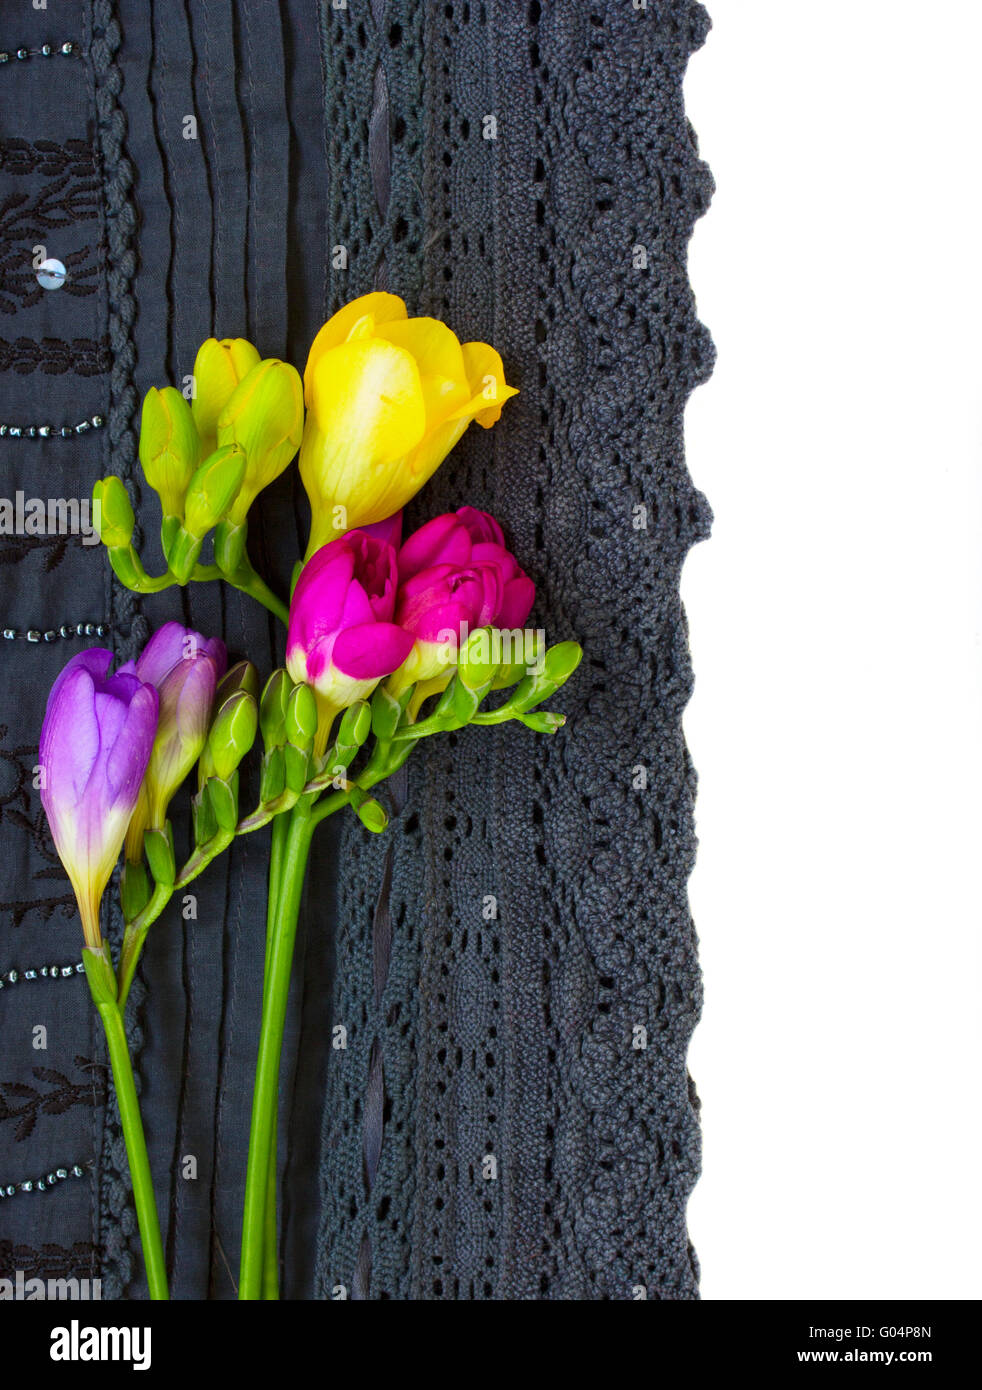 Black White Abstract Flowers Lace Stockfotos & Black White Abstract ...